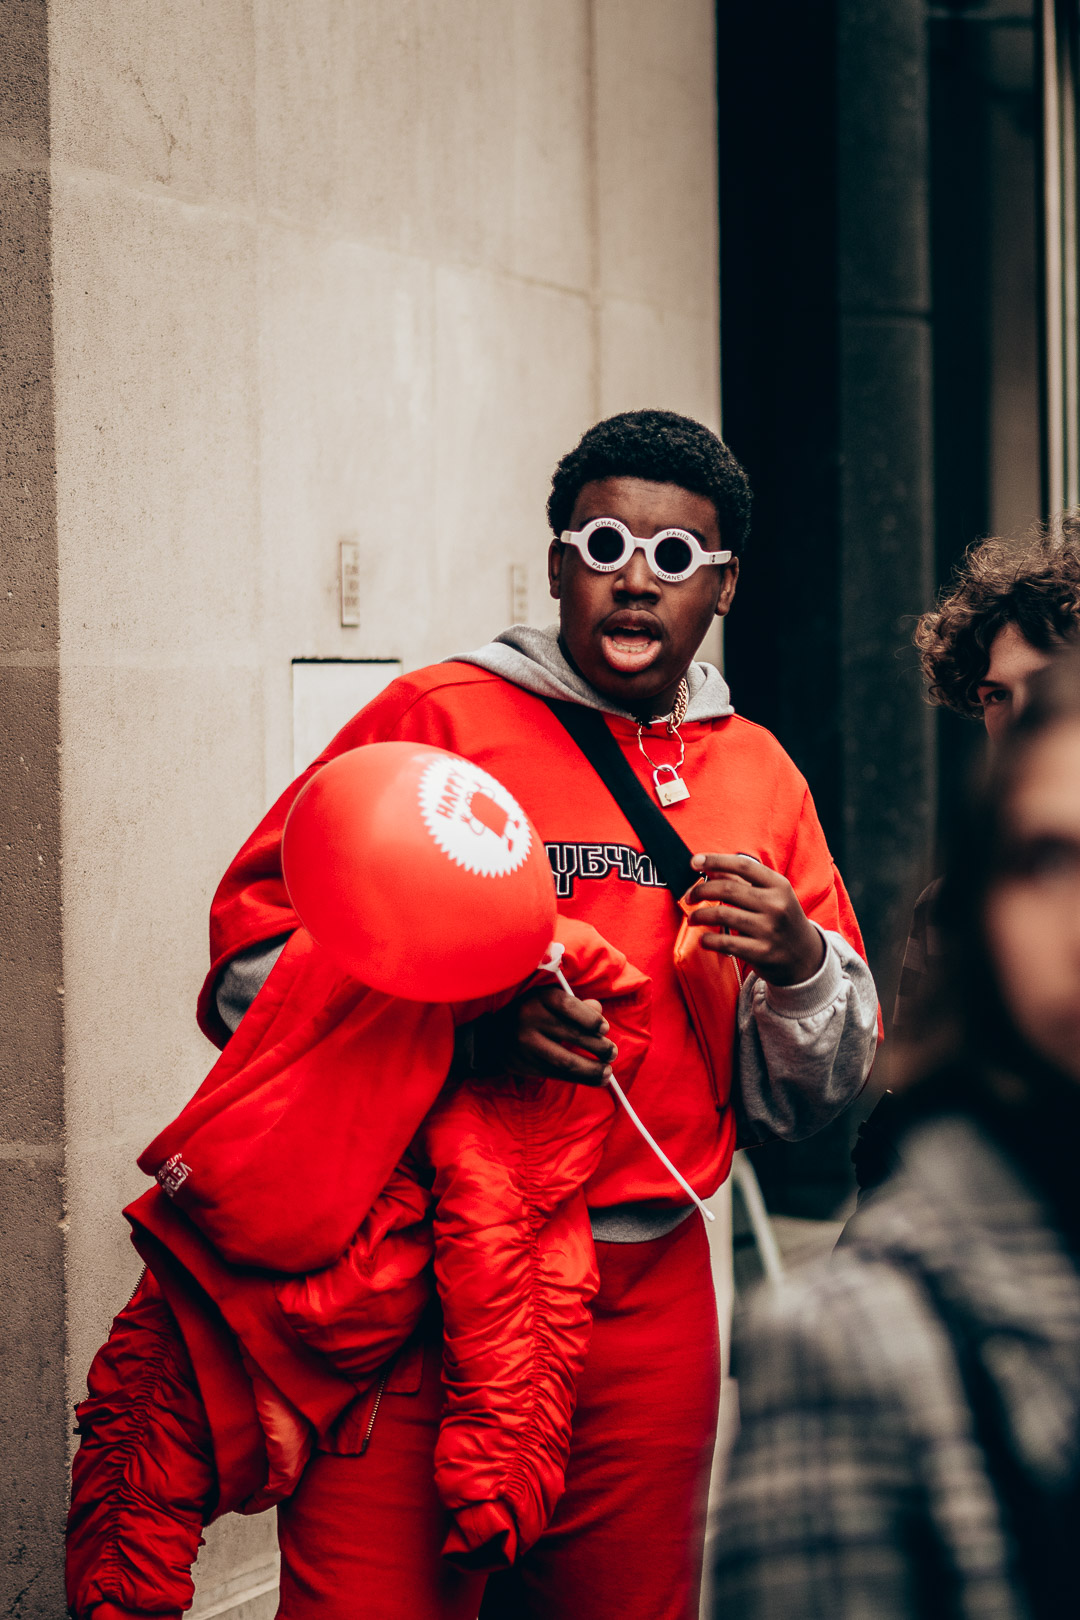 street style photography at Paris Fashion Week